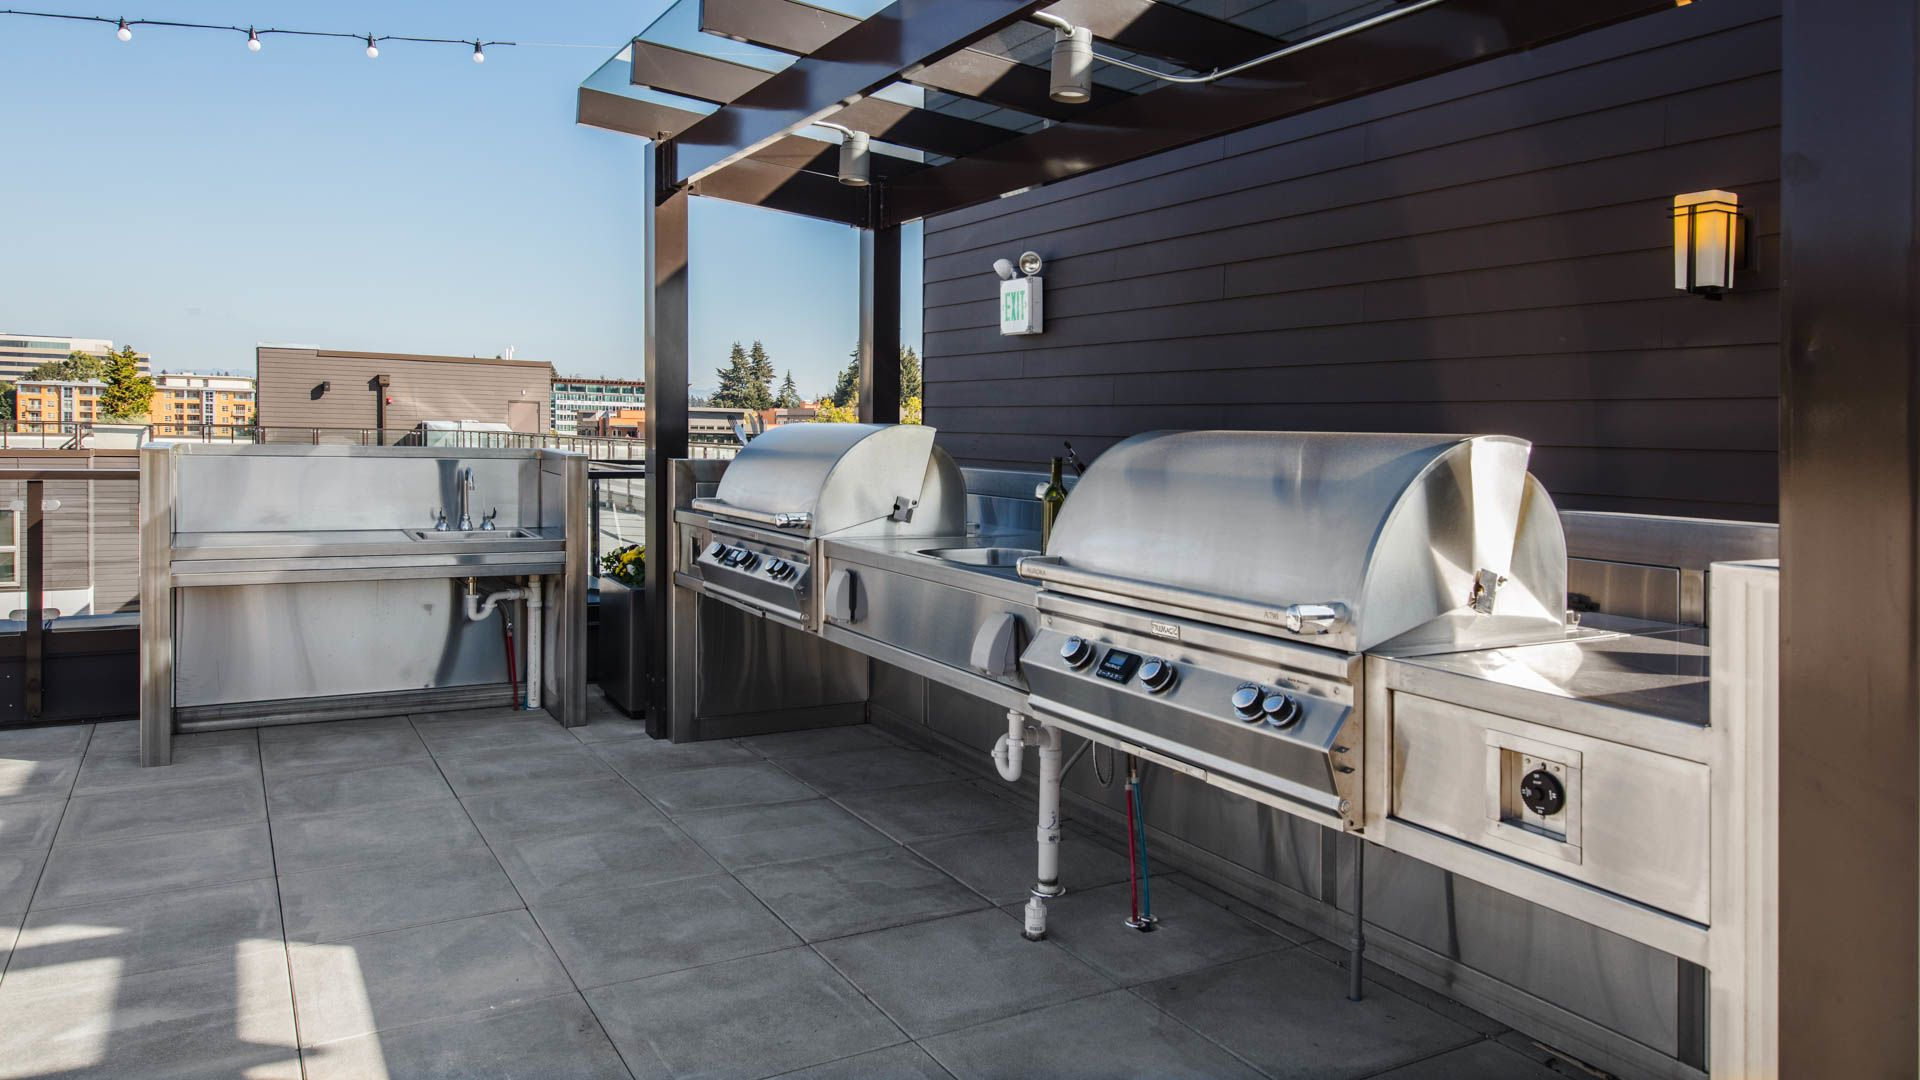 Venn at Main Apartments - Grilling Area